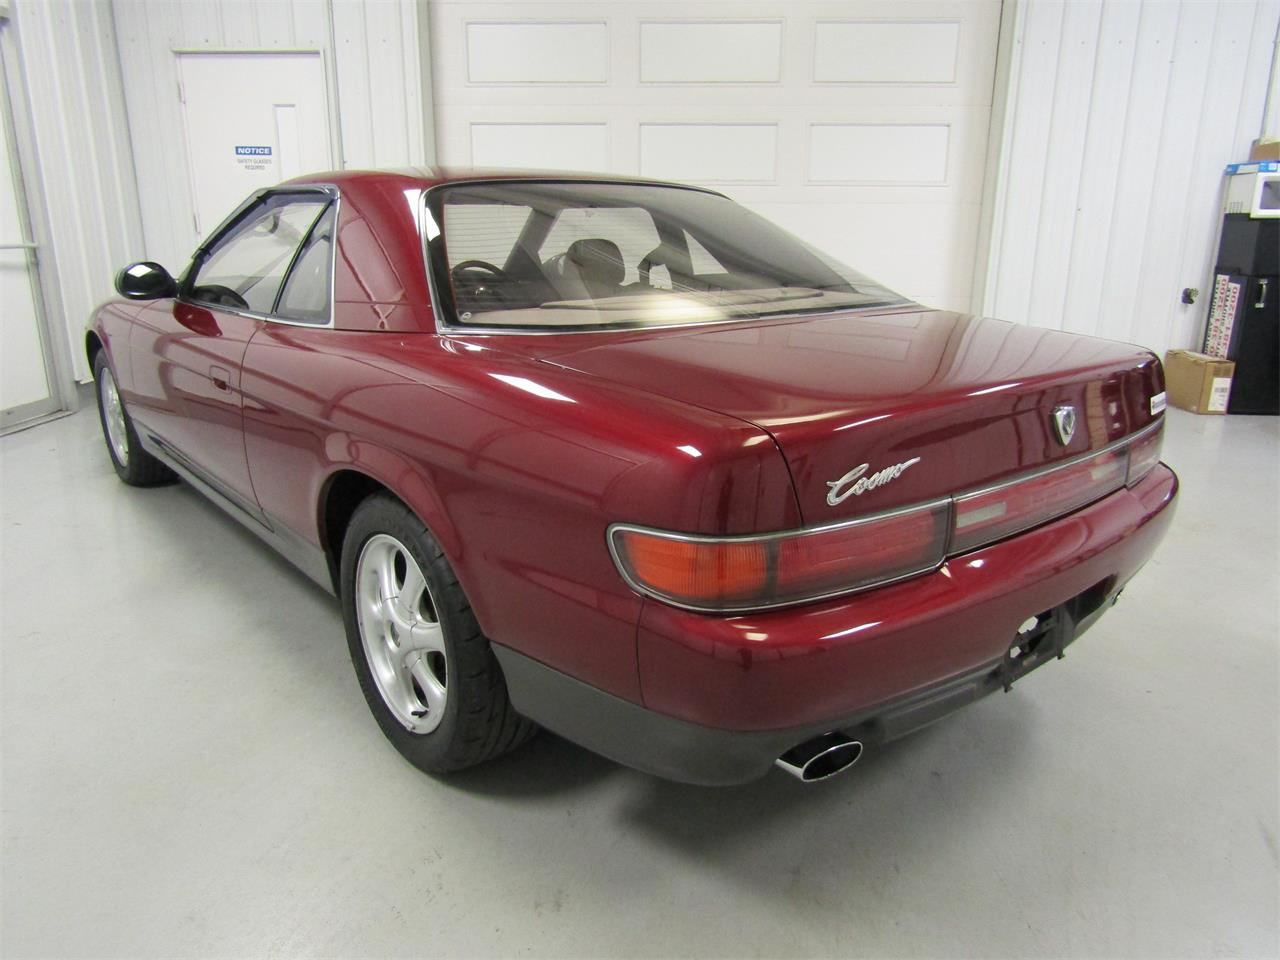 Large Picture of '92 Eunos Cosmo - $12,900.00 Offered by Duncan Imports & Classic Cars - MZDH